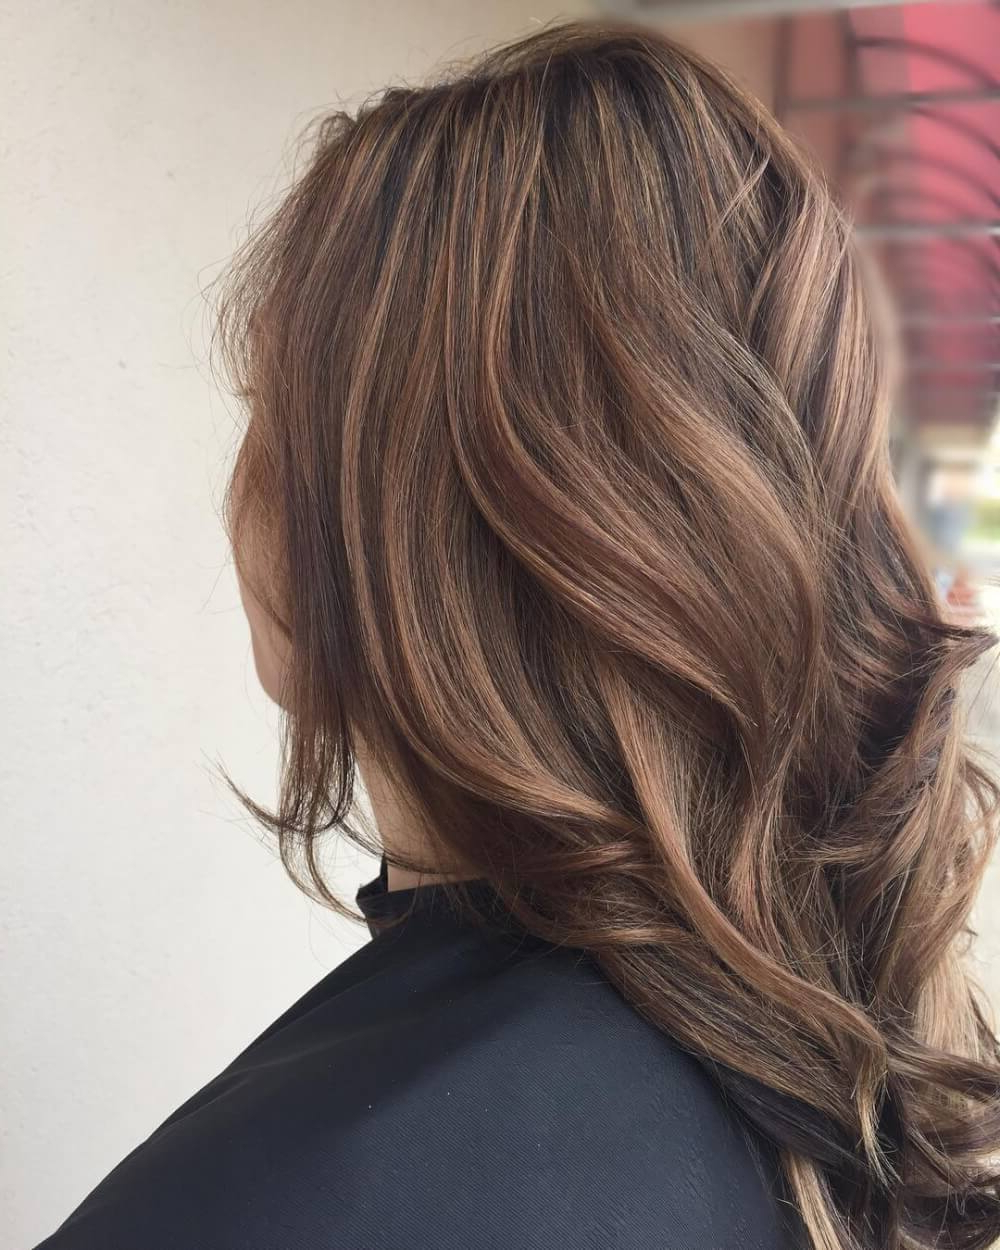 36 Light Brown Hair Colors That Are Blowing Up In 2019 Intended For Fashionable Light Layers Hairstyles Enhanced By Color (Gallery 12 of 20)